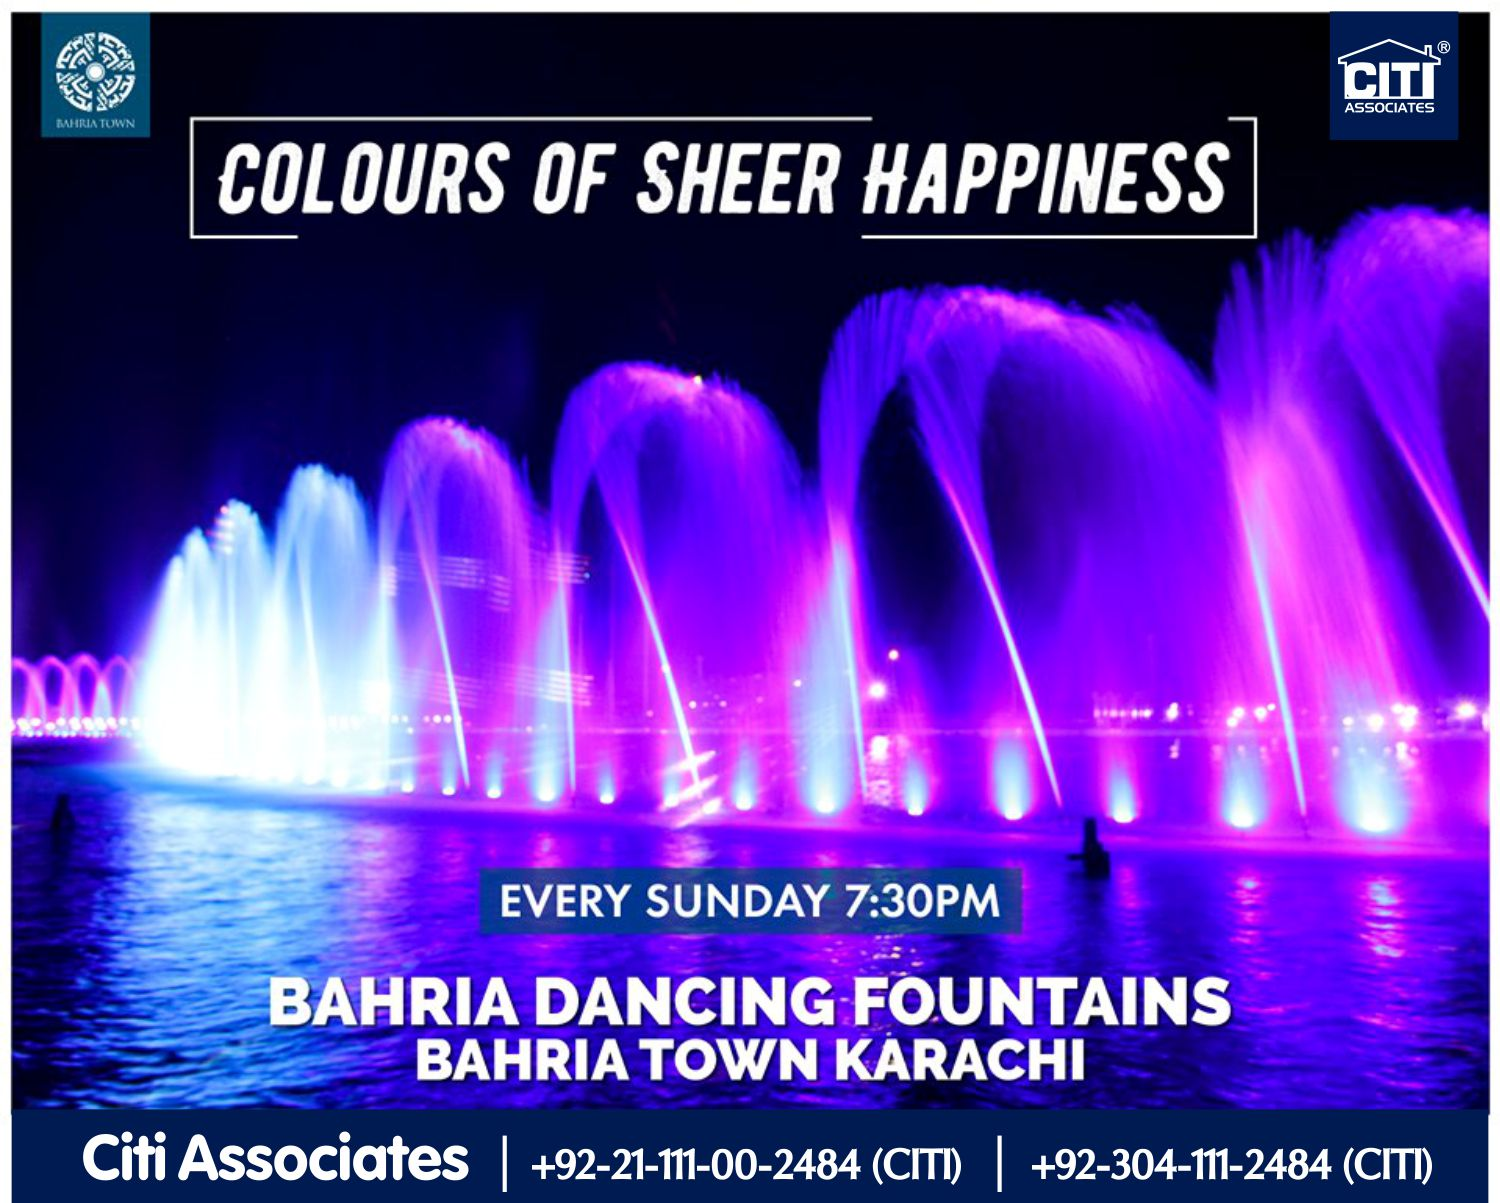 Colours of Sheer Happiness | Bahria Dancing Fountains Karachi